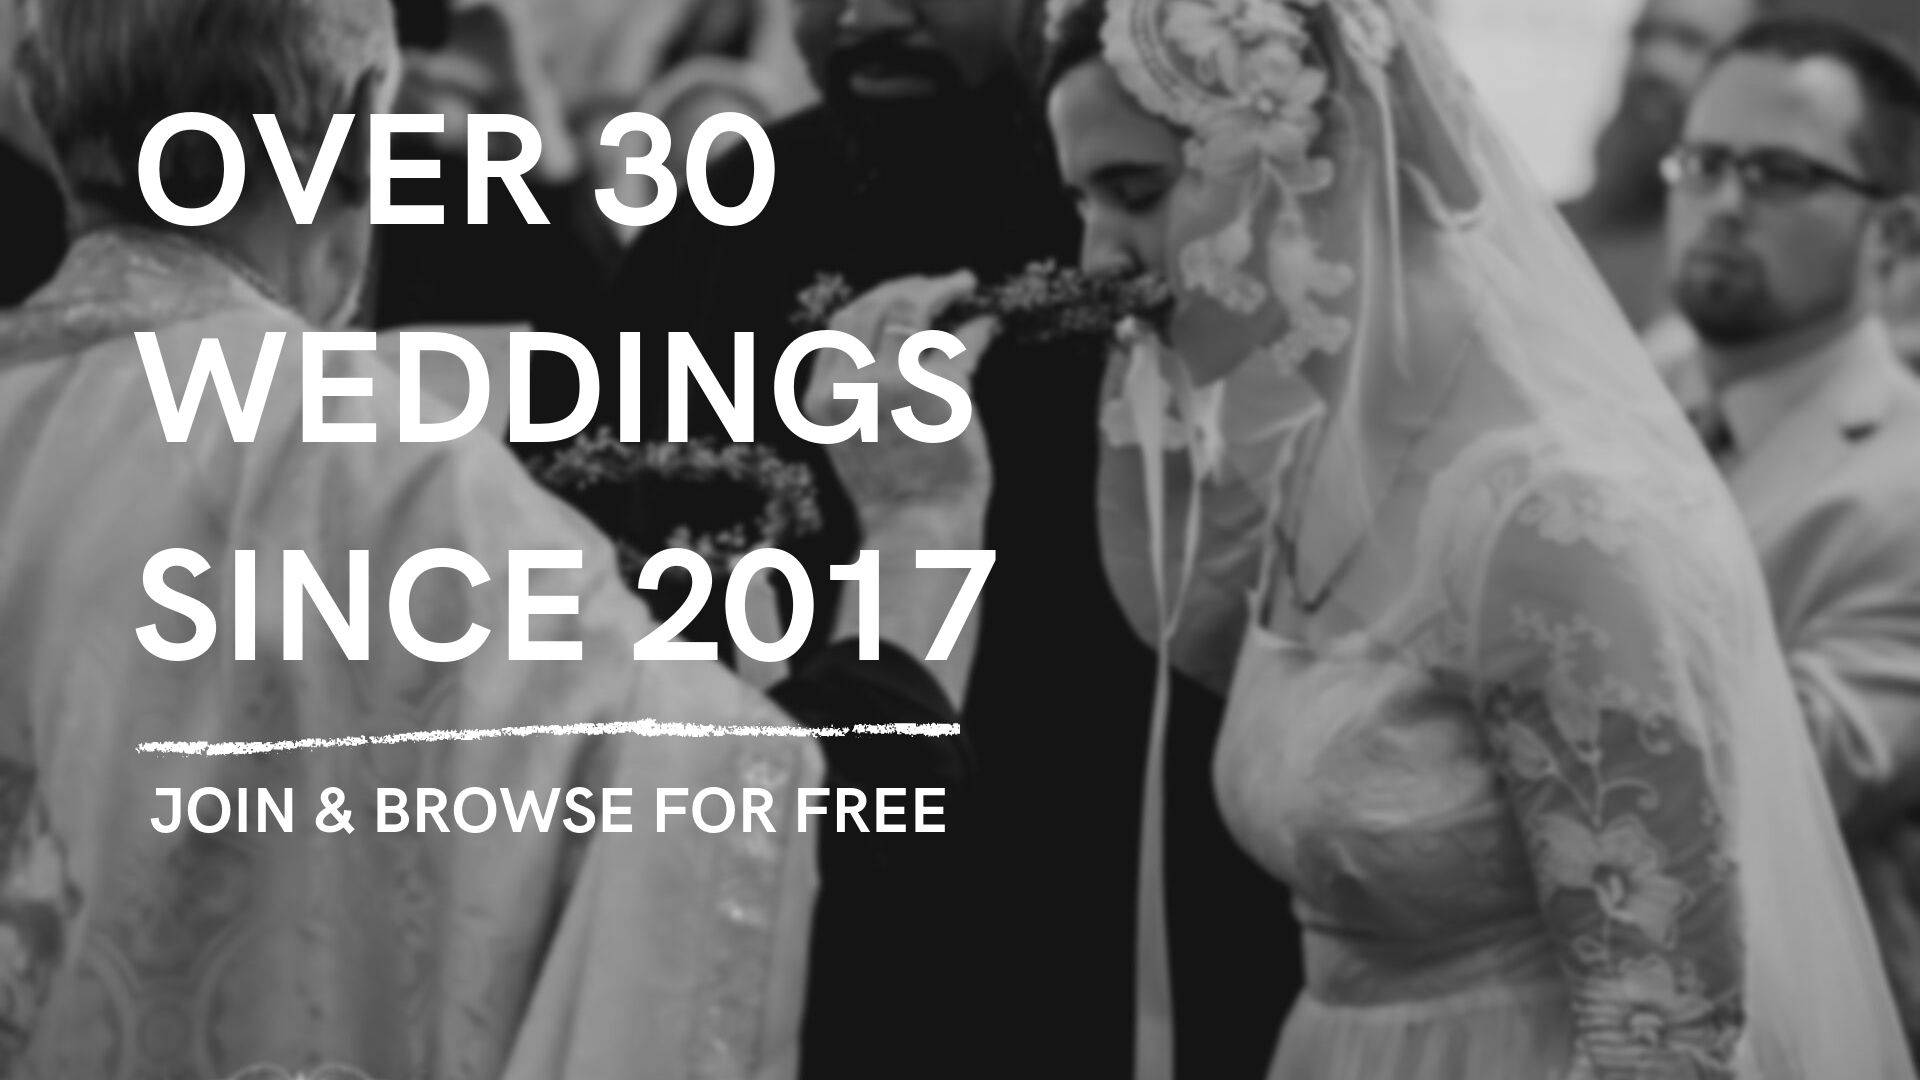 orthodox dating service 301 moved permanently nginx/1122.